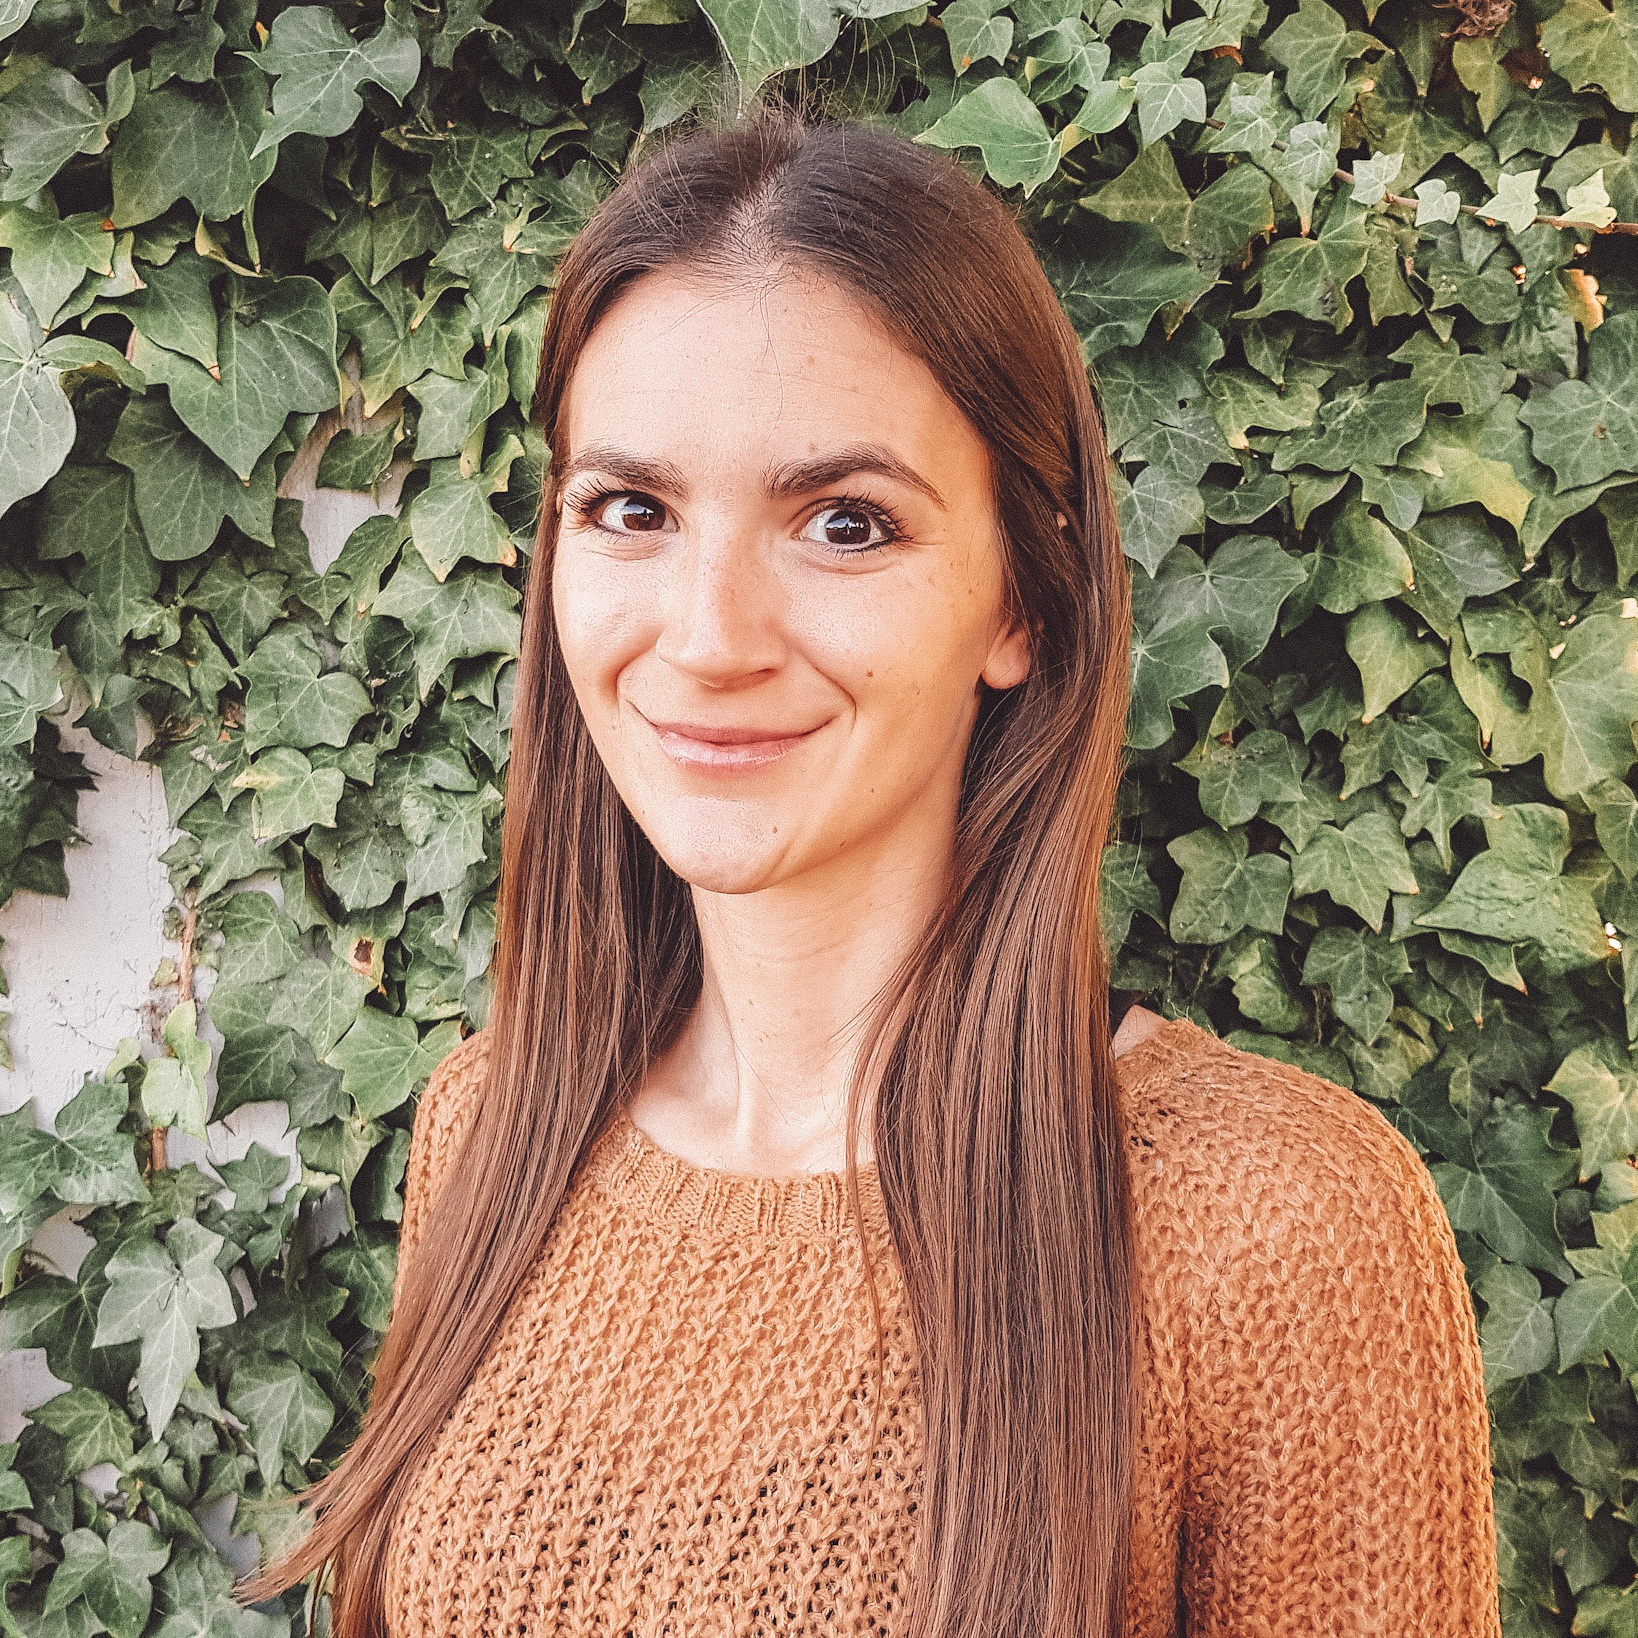 Alice Piazzoli - GRADUATE OF ARCHITECTUREAlice is a creative International architect who obtained her Master of Architecture at the renowned Academy of Architecture in Switzerland. Her love for travel inspires, enriches and influences her style providing Designers by Nature with fresh new perspectives, which she applies to the conceptual design of many projects. One of Alice's most important stylistic traits is the continuous refinement of creating harmony between architecture and nature.